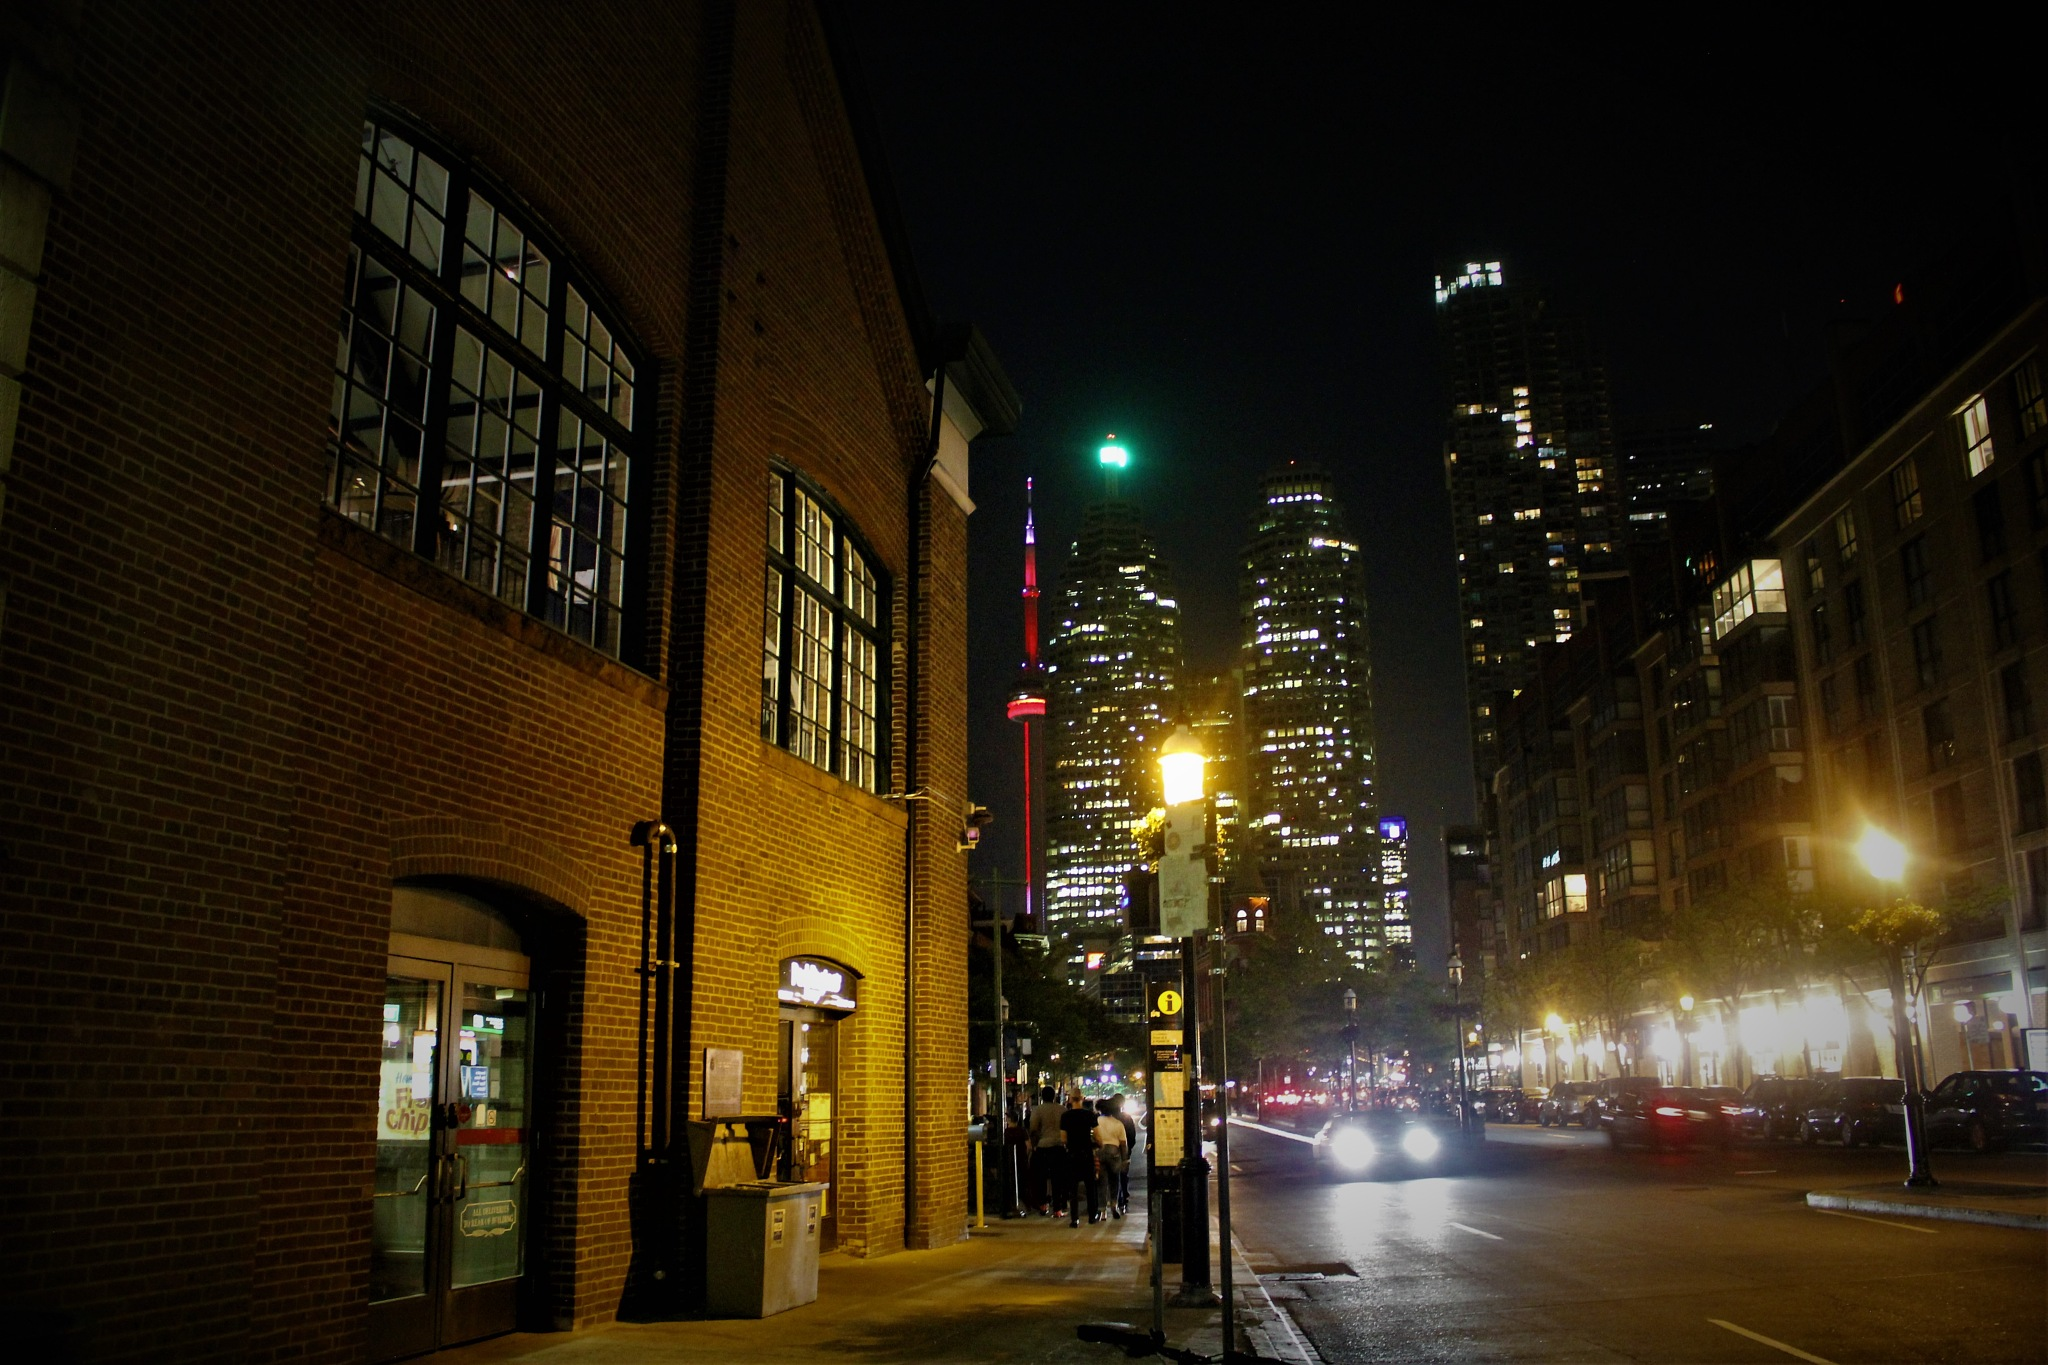 Toronto Night by David Imrie